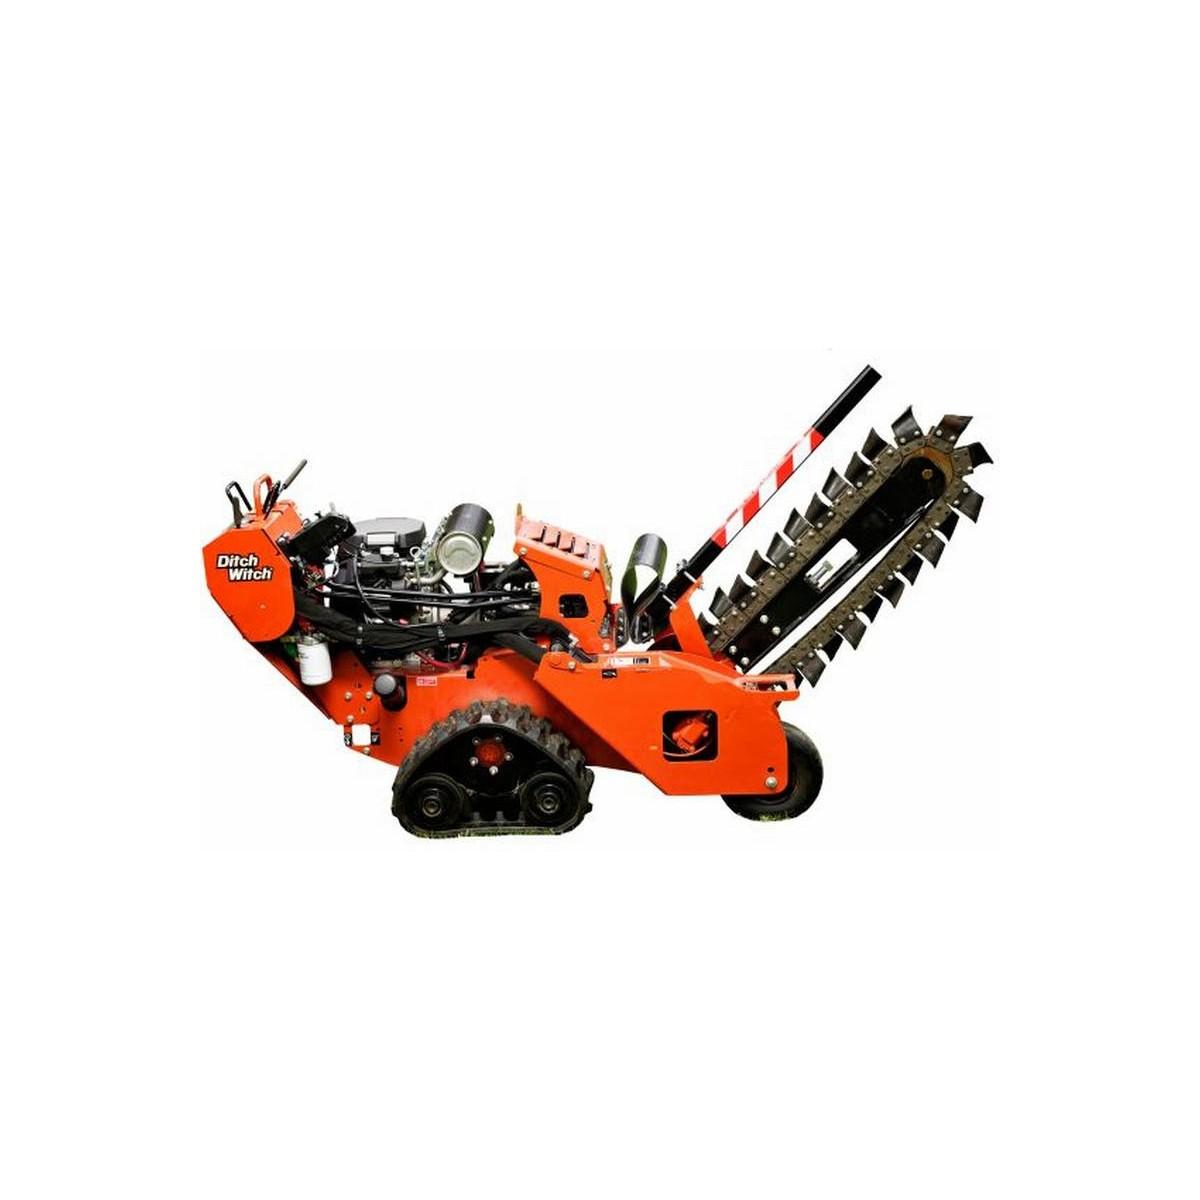 Zanjadora ditch witch rt12